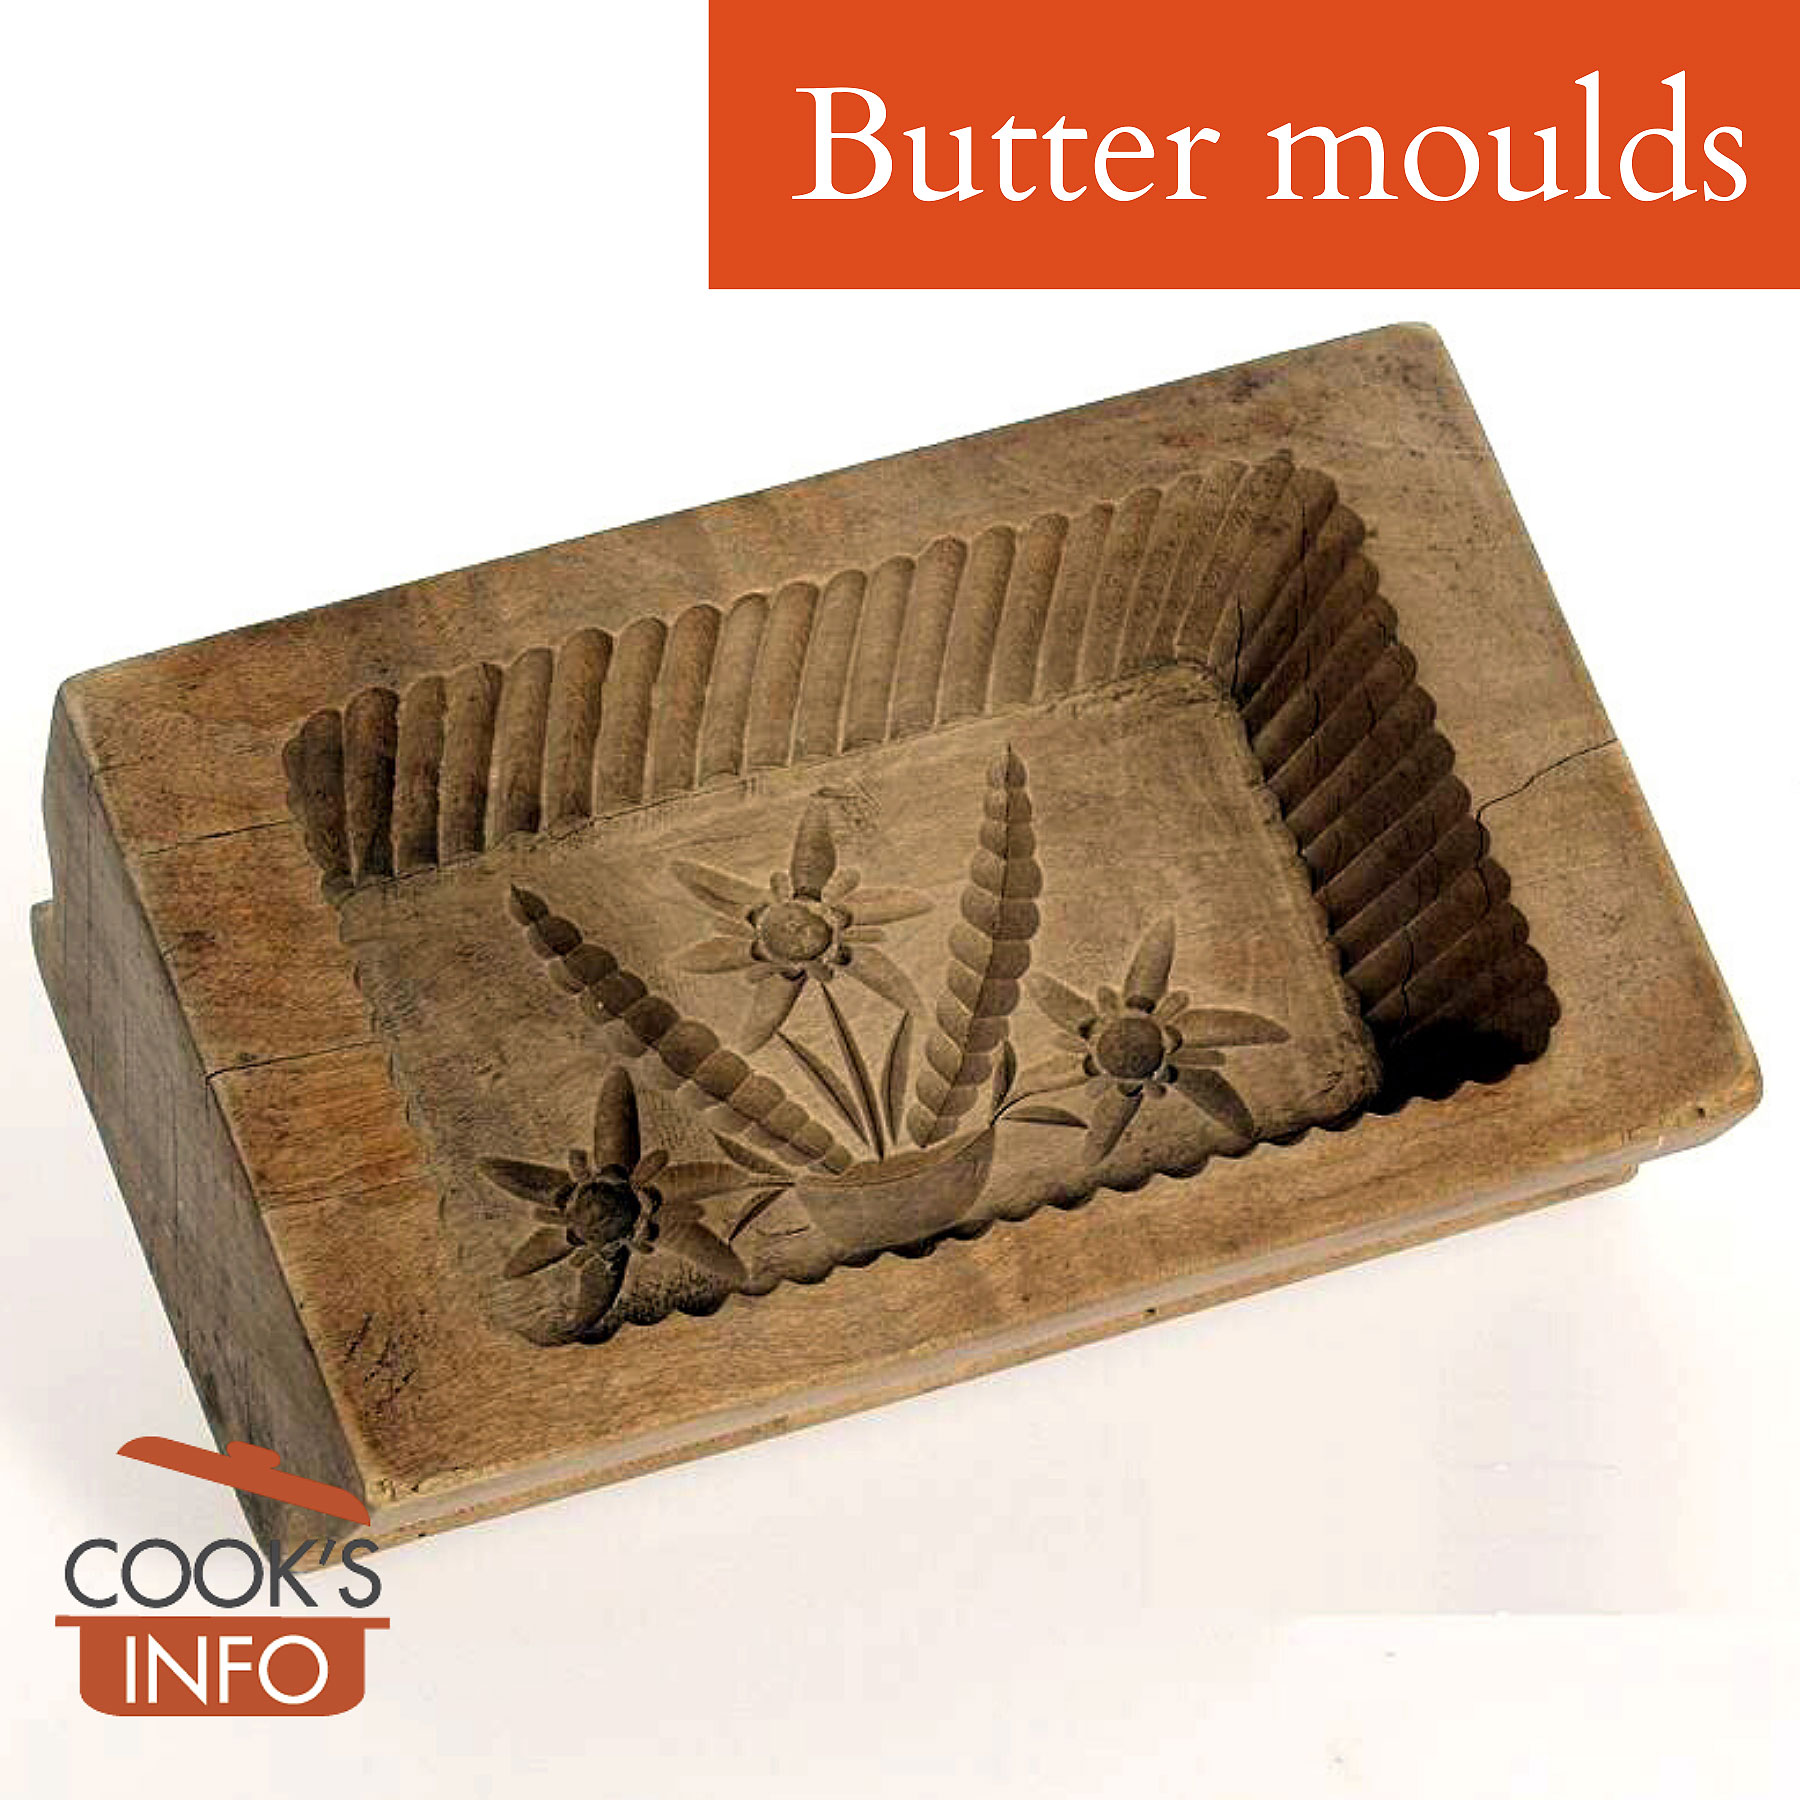 Butter mould